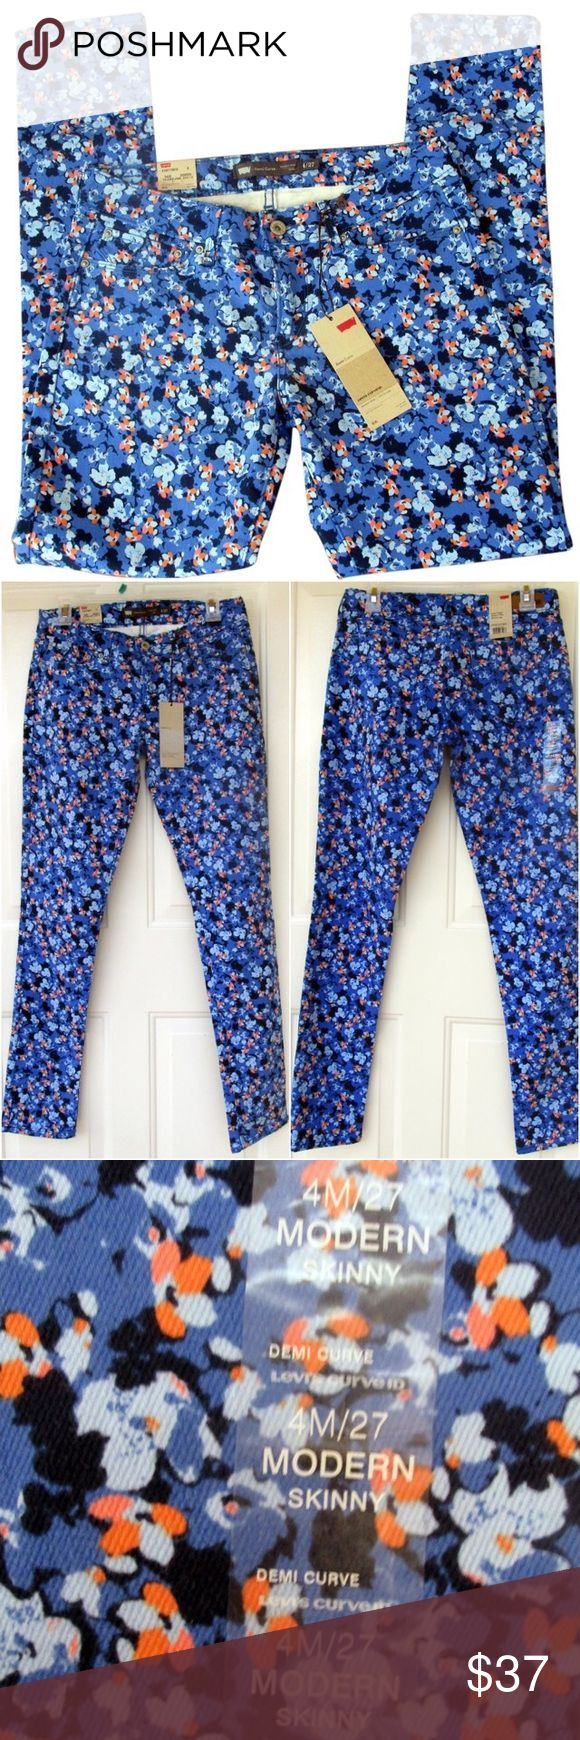 ✨SALE🆕 Levi's Orange and Blue Floral Skinny Jeans ~SALE!✨Reduced from $37 to $30. Weekend price is firm!~  NWT! New with tags! These are adorable Levis Jeans in blue and orange flowers. They are the Demi Curve Modern Rise Skinny Leg in size 4. Perfect and stylish for any season! No swaps/trades. Levi's Jeans Skinny